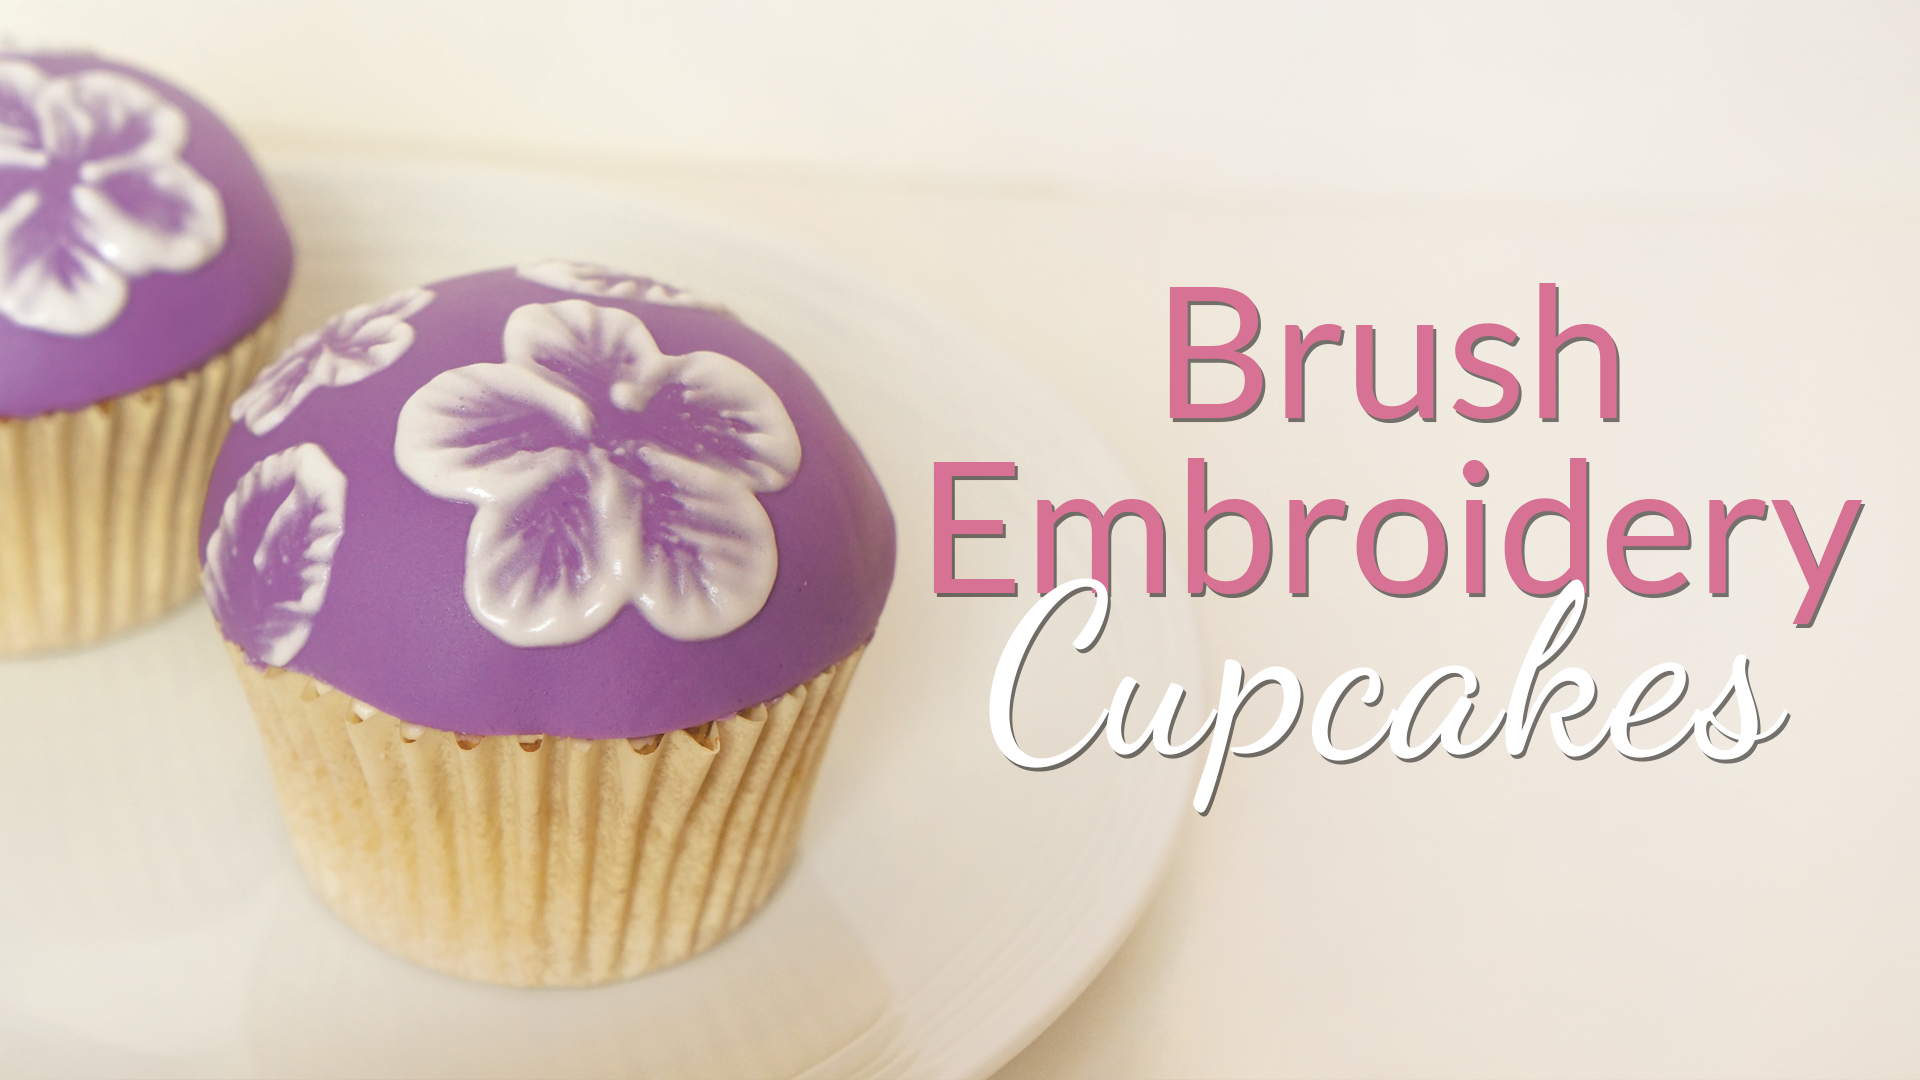 Click to view my brush embroidery cupcake tutorial